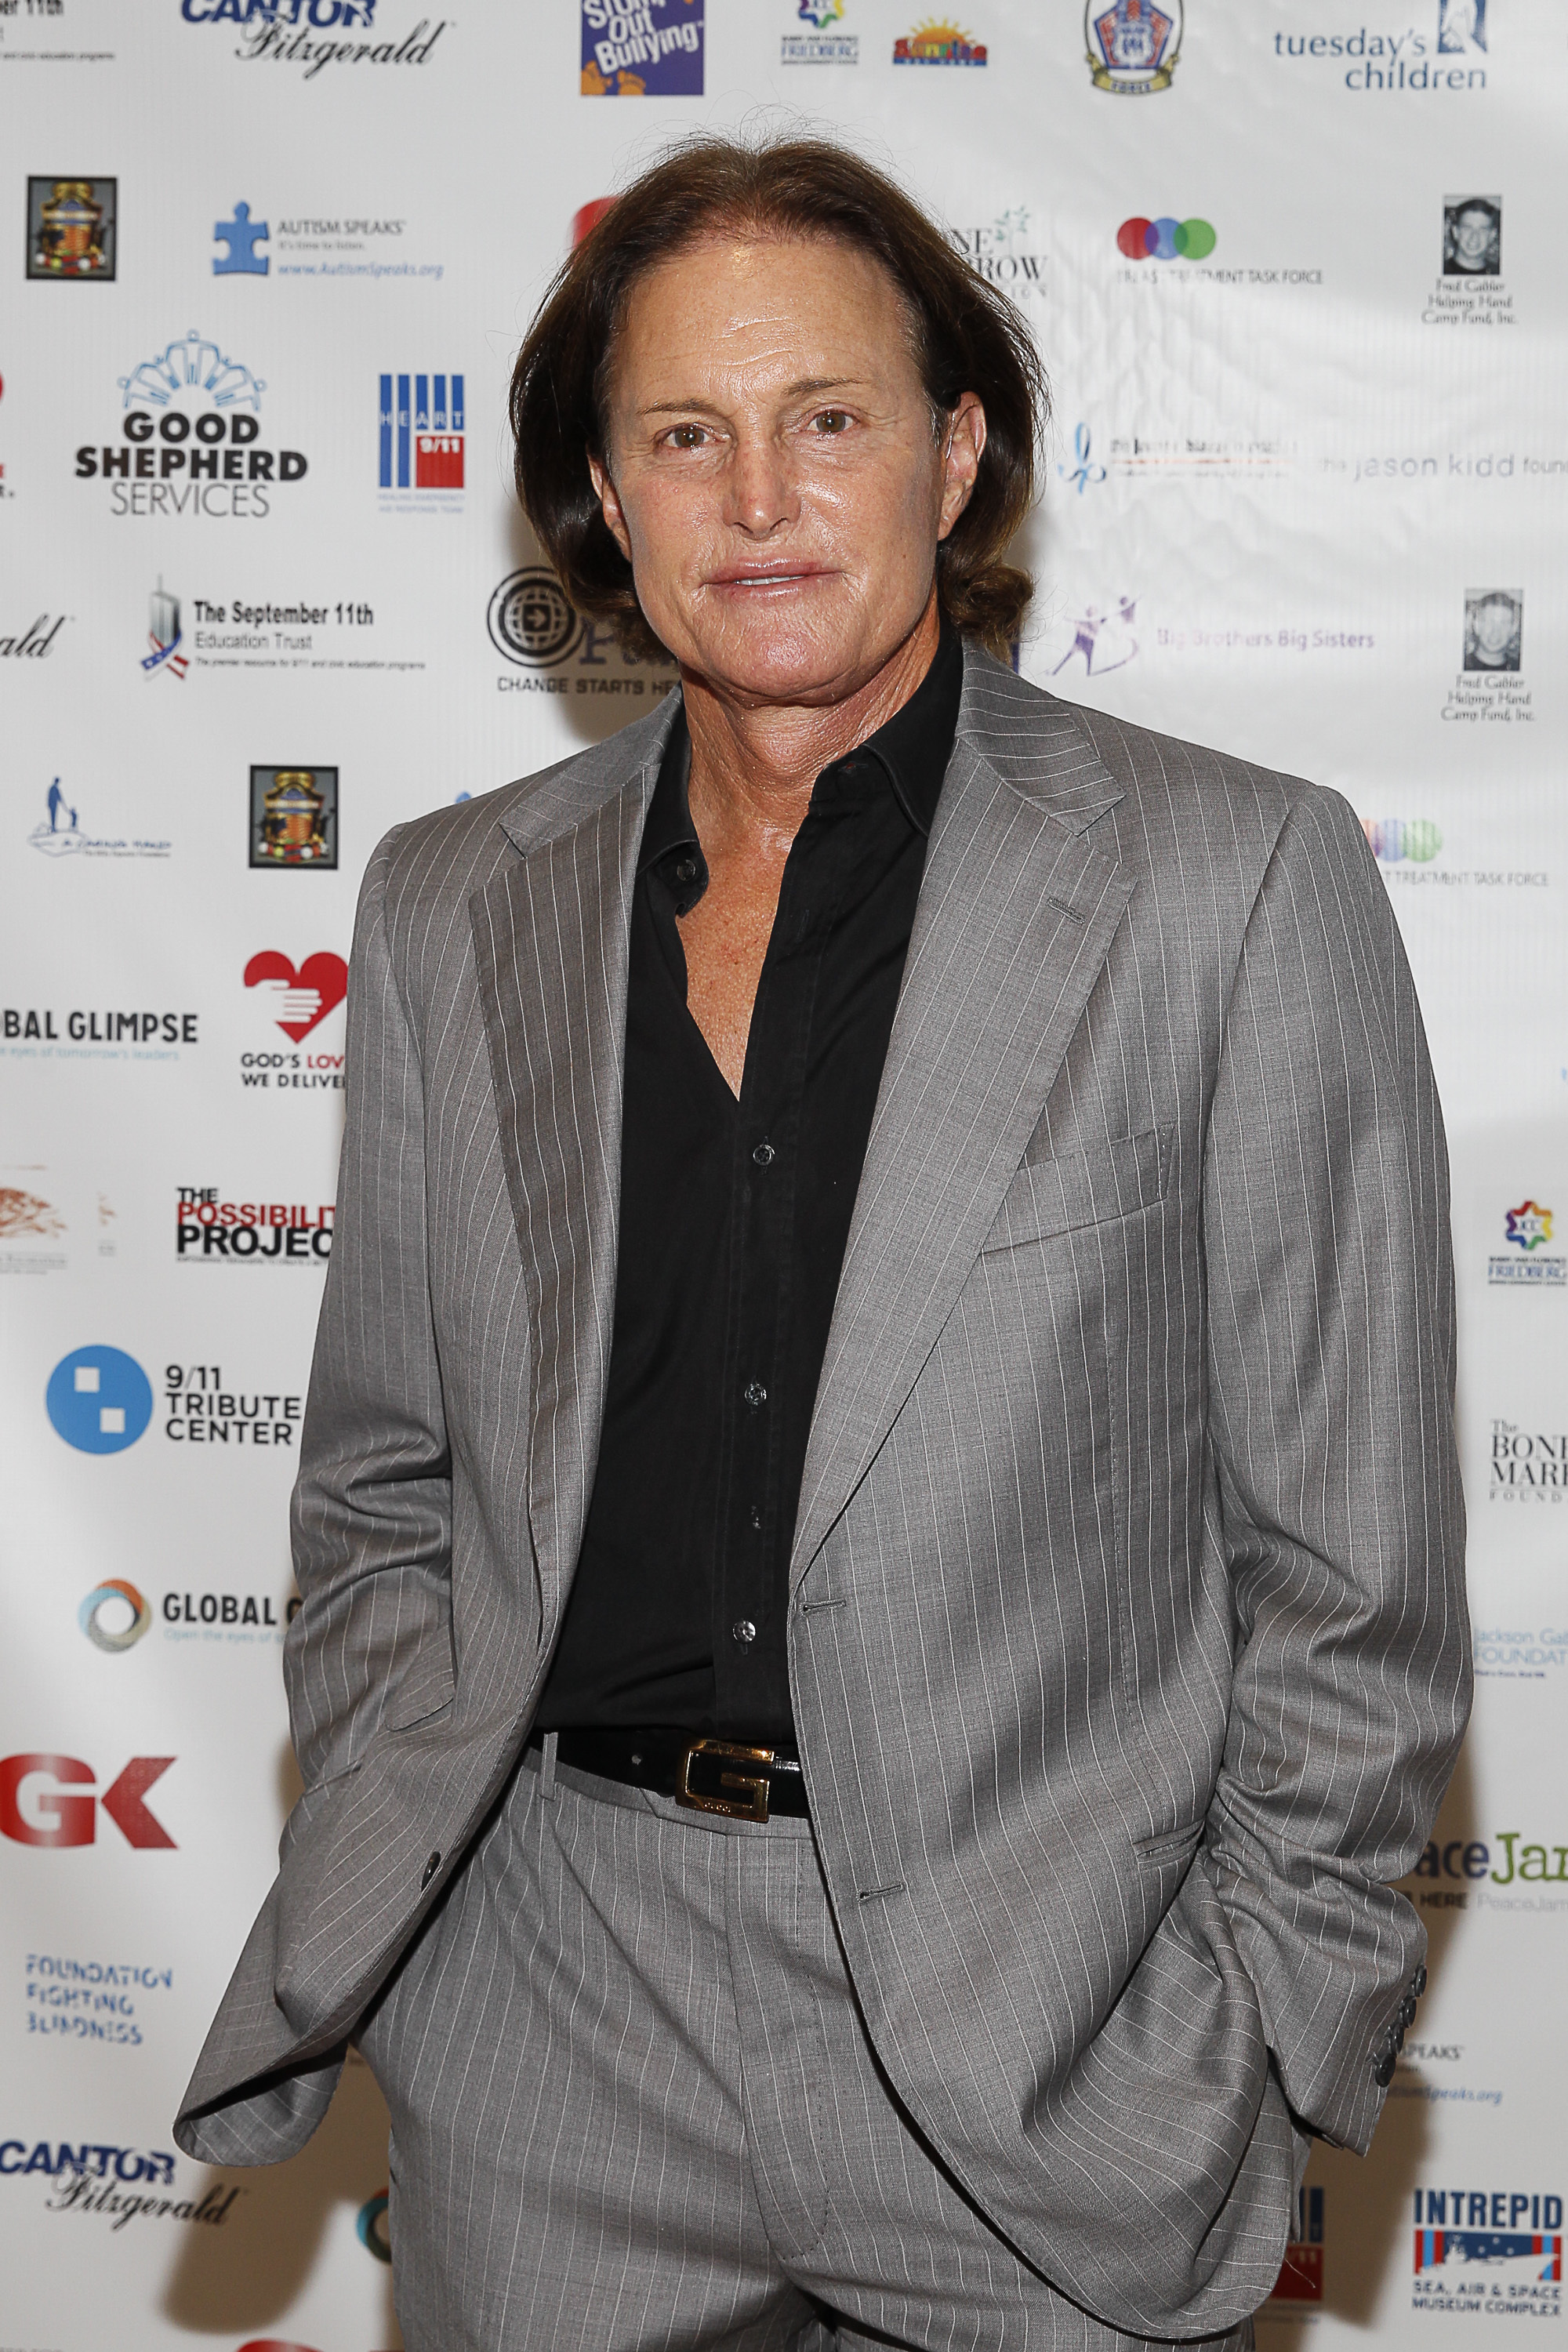 Bruce Jenner cutting back on Kardashian interactions?